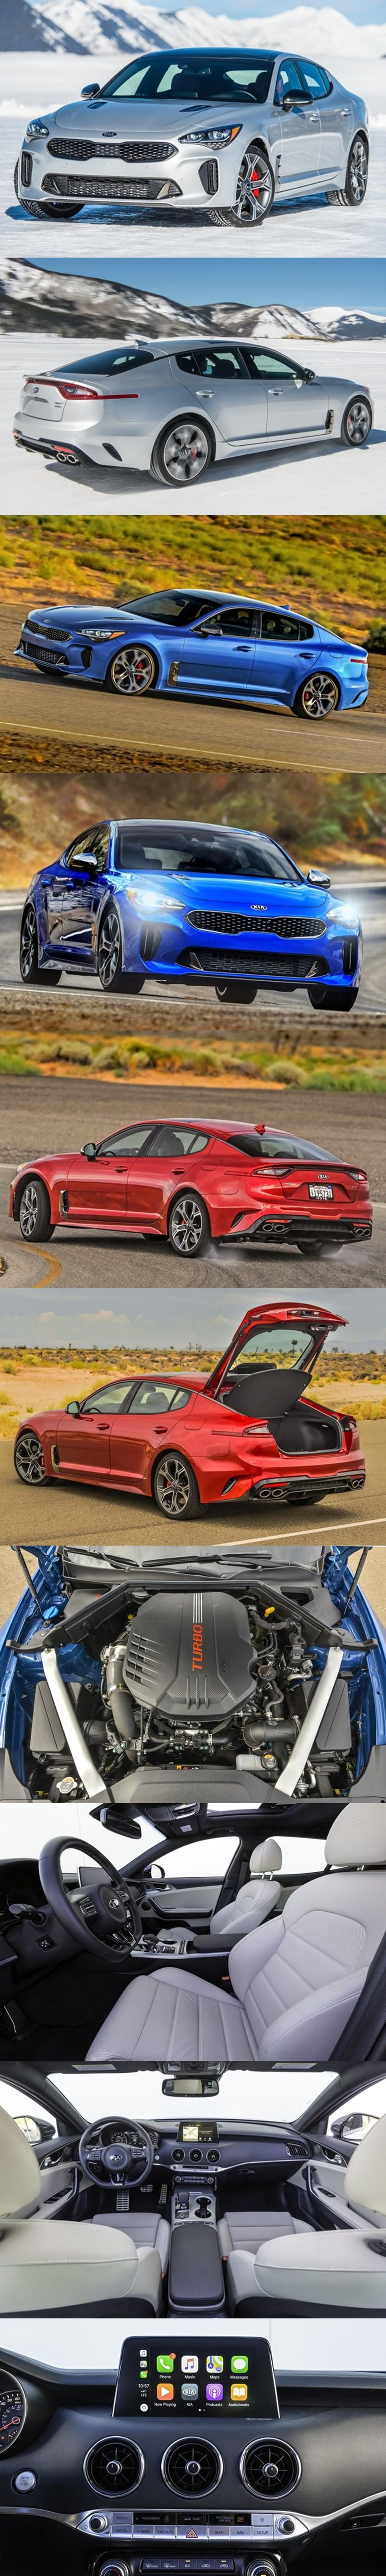 2018 Kia Stinger Recalled For Wiring Harnesses That Could Ignite